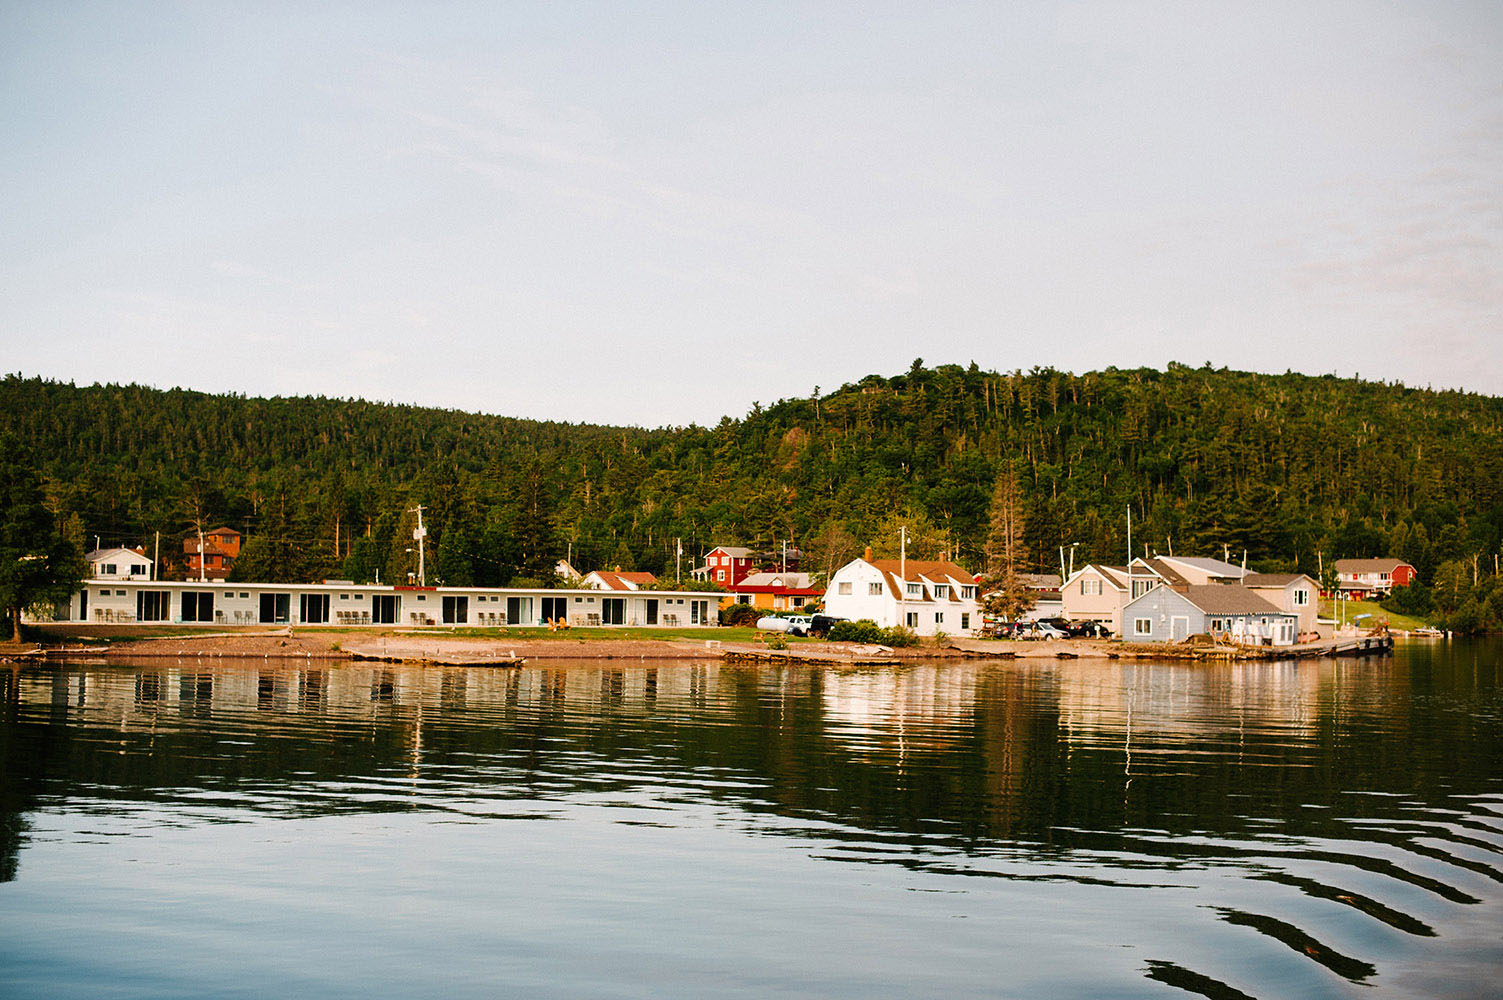 View of Copper Harbor Michigan from a boat